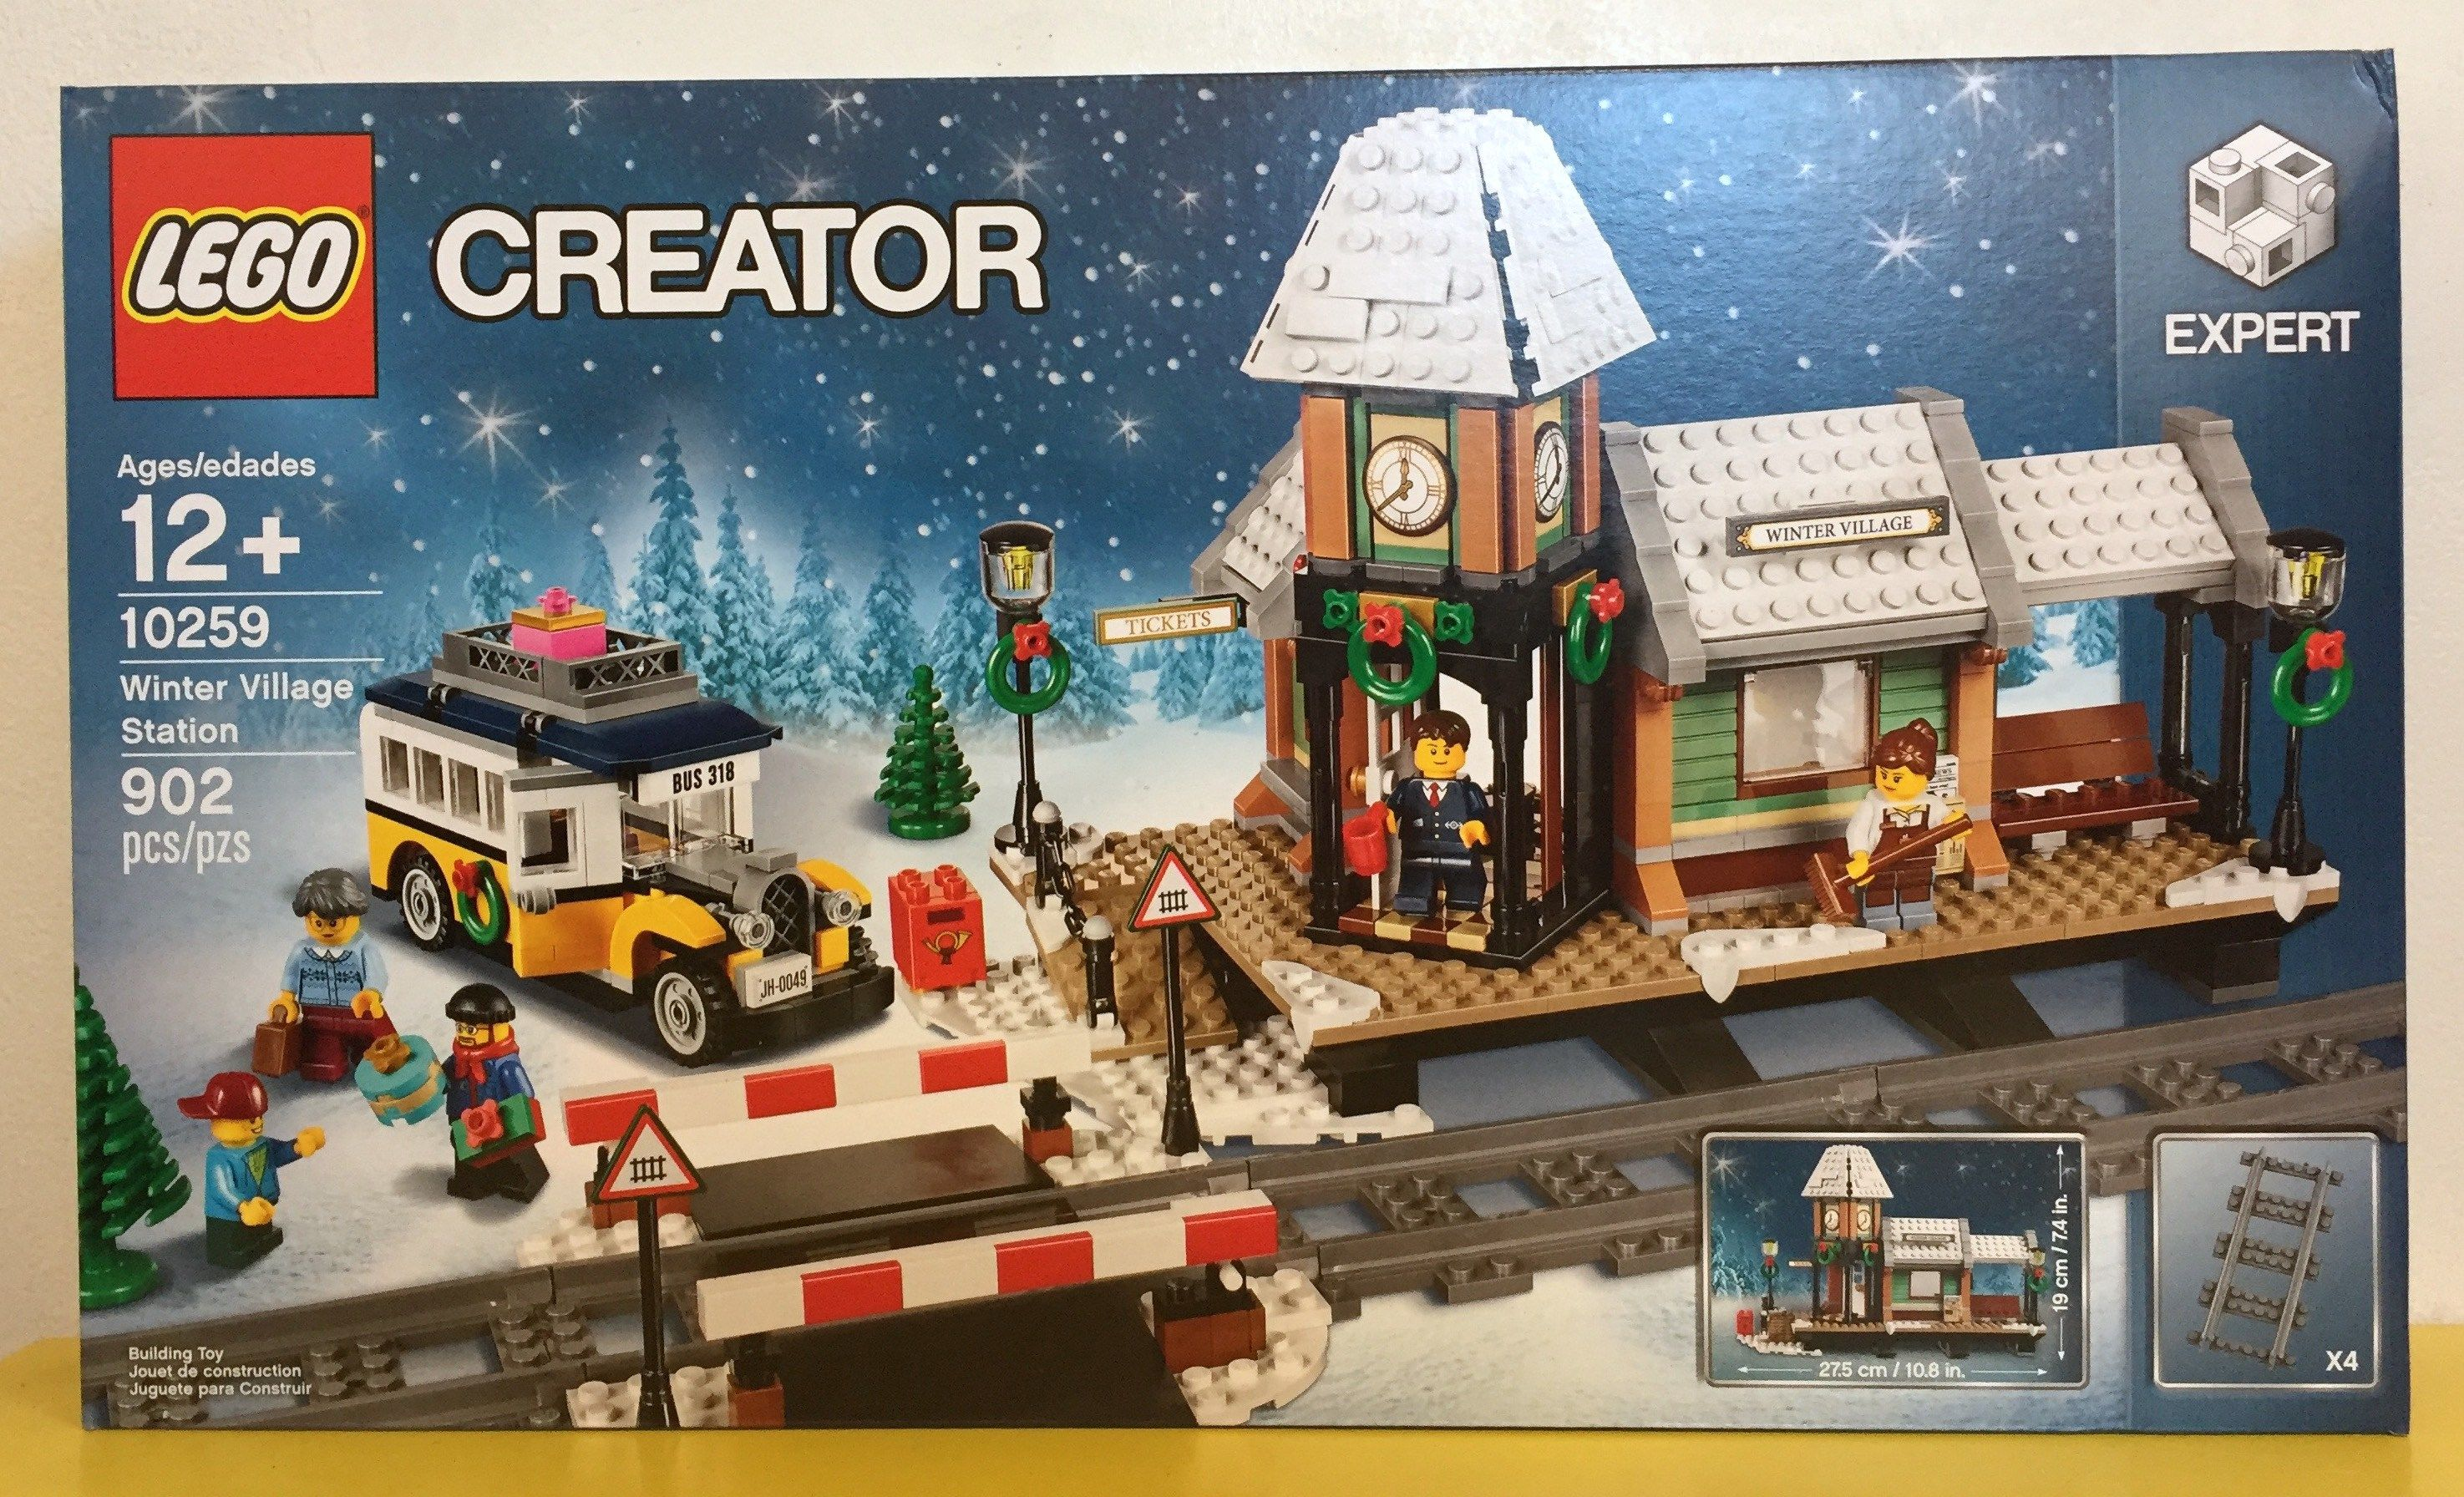 Lego Creator 10259 Winter Village Station Lego creator